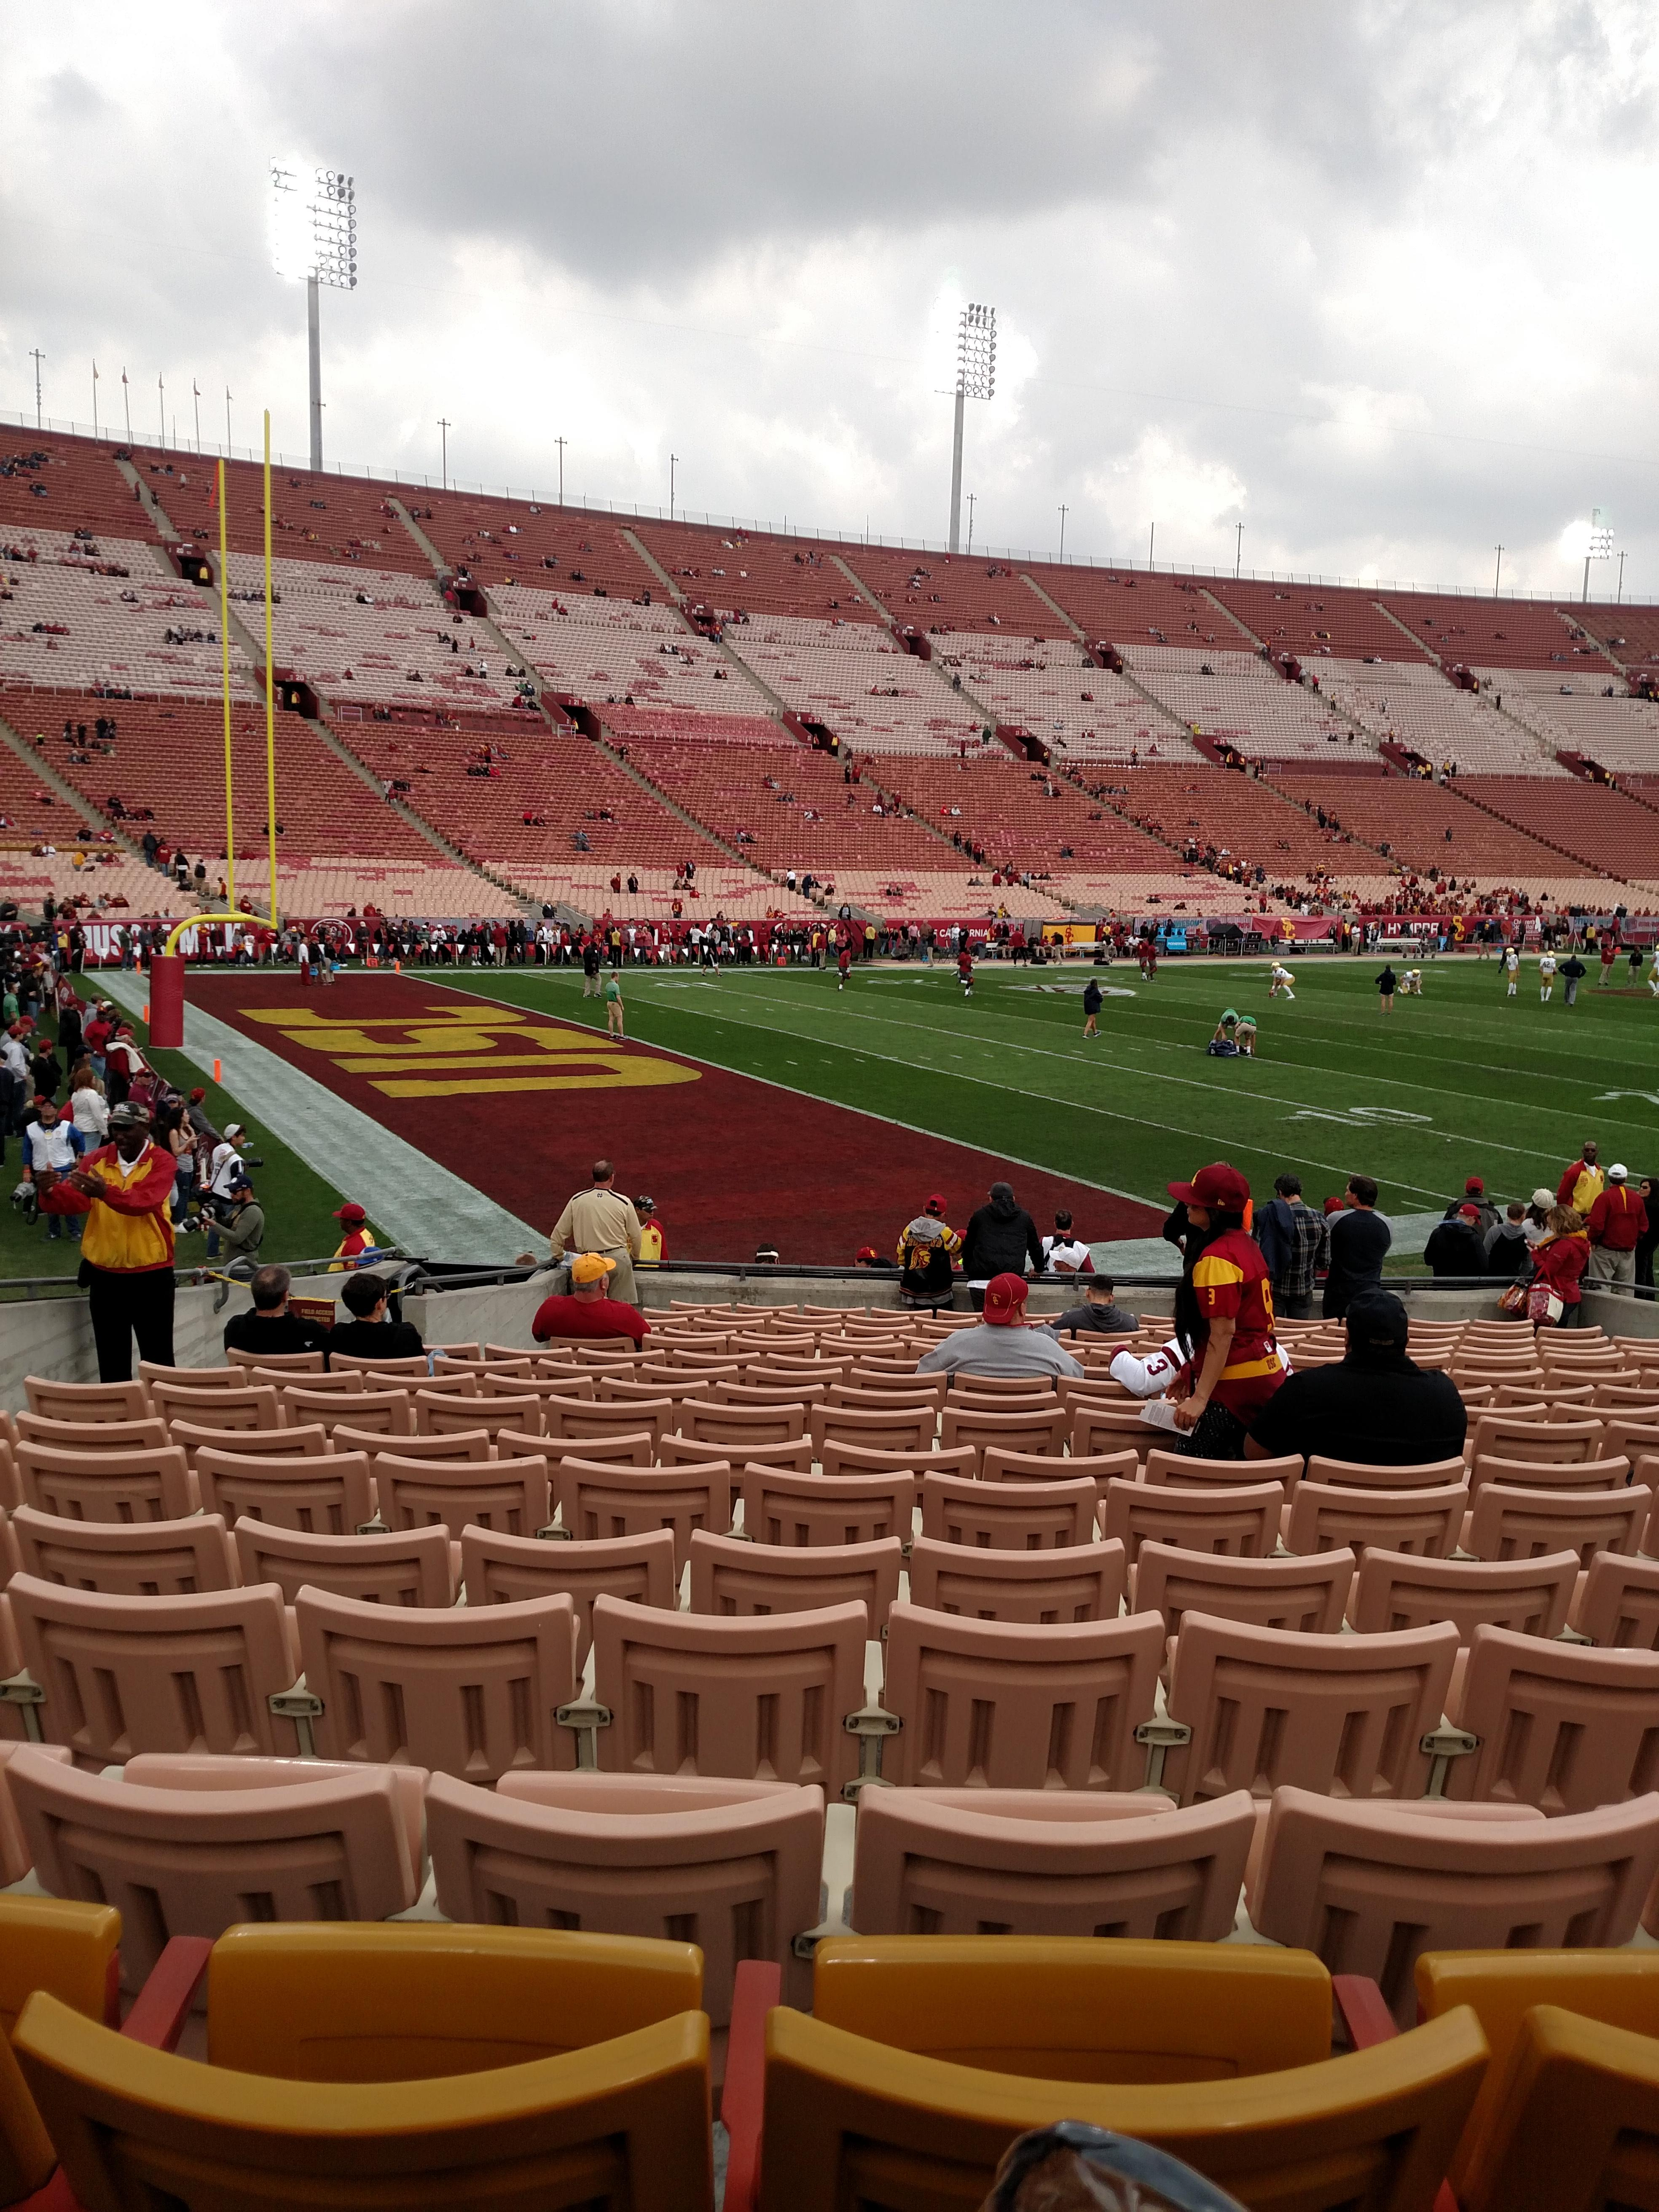 Los Angeles Memorial Coliseum Section 110B Row 17 Seat 7